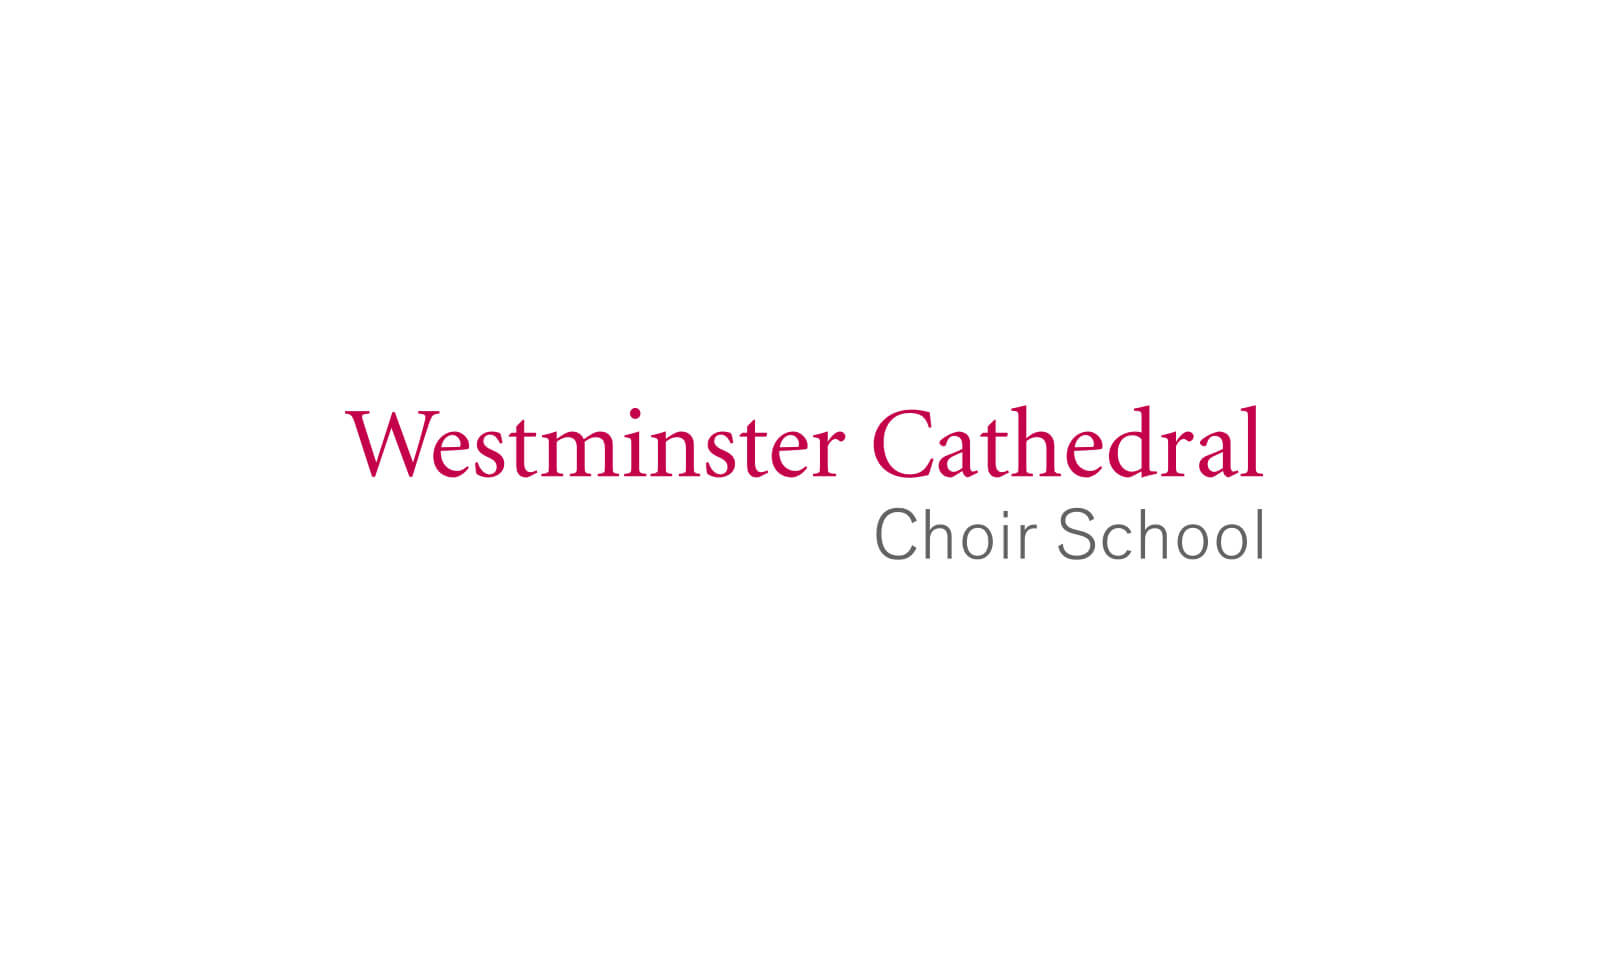 Westminster Cathedral Choir School